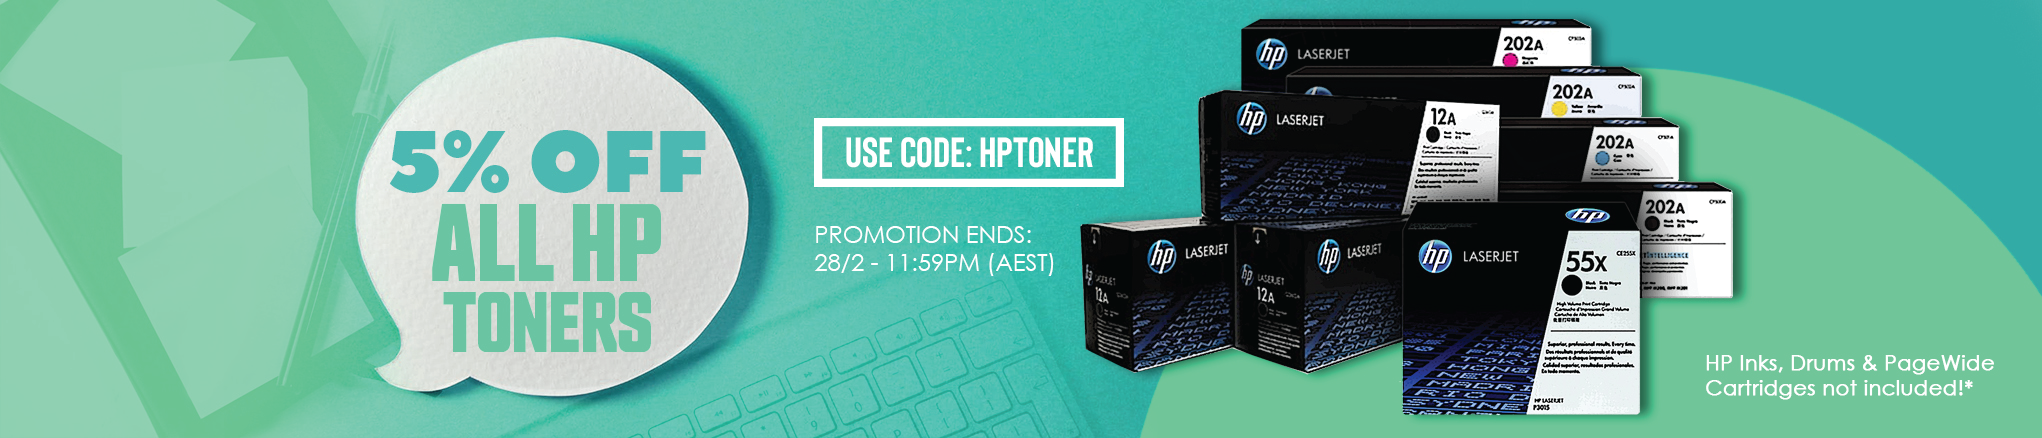 5% off all HP toners - use code HPTONER